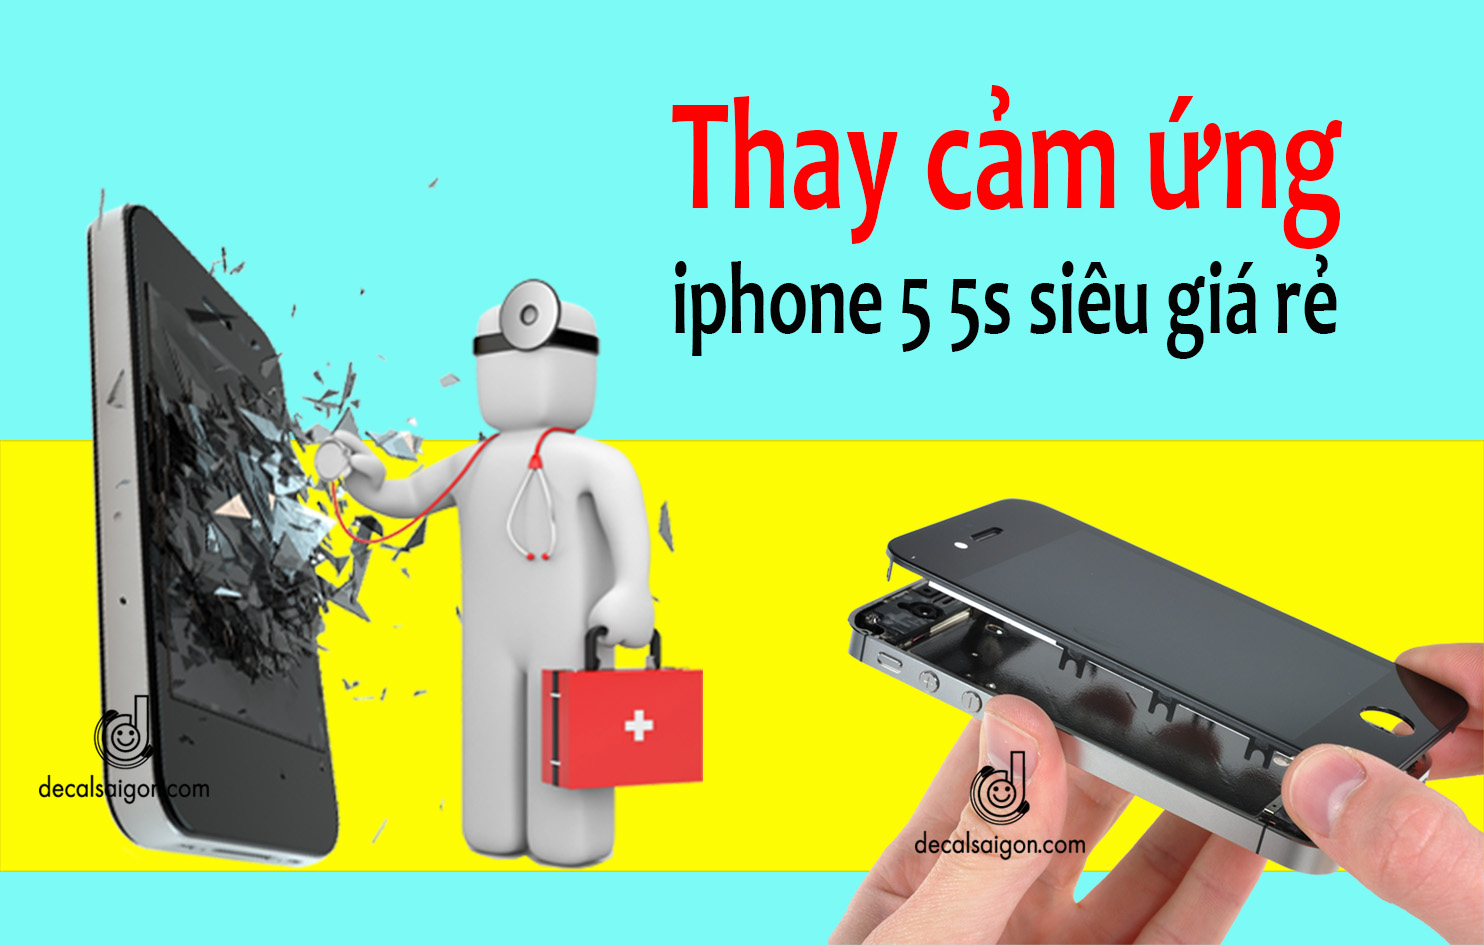 Uy tin gia re cuc soc tphcm thay man iphone lay lien